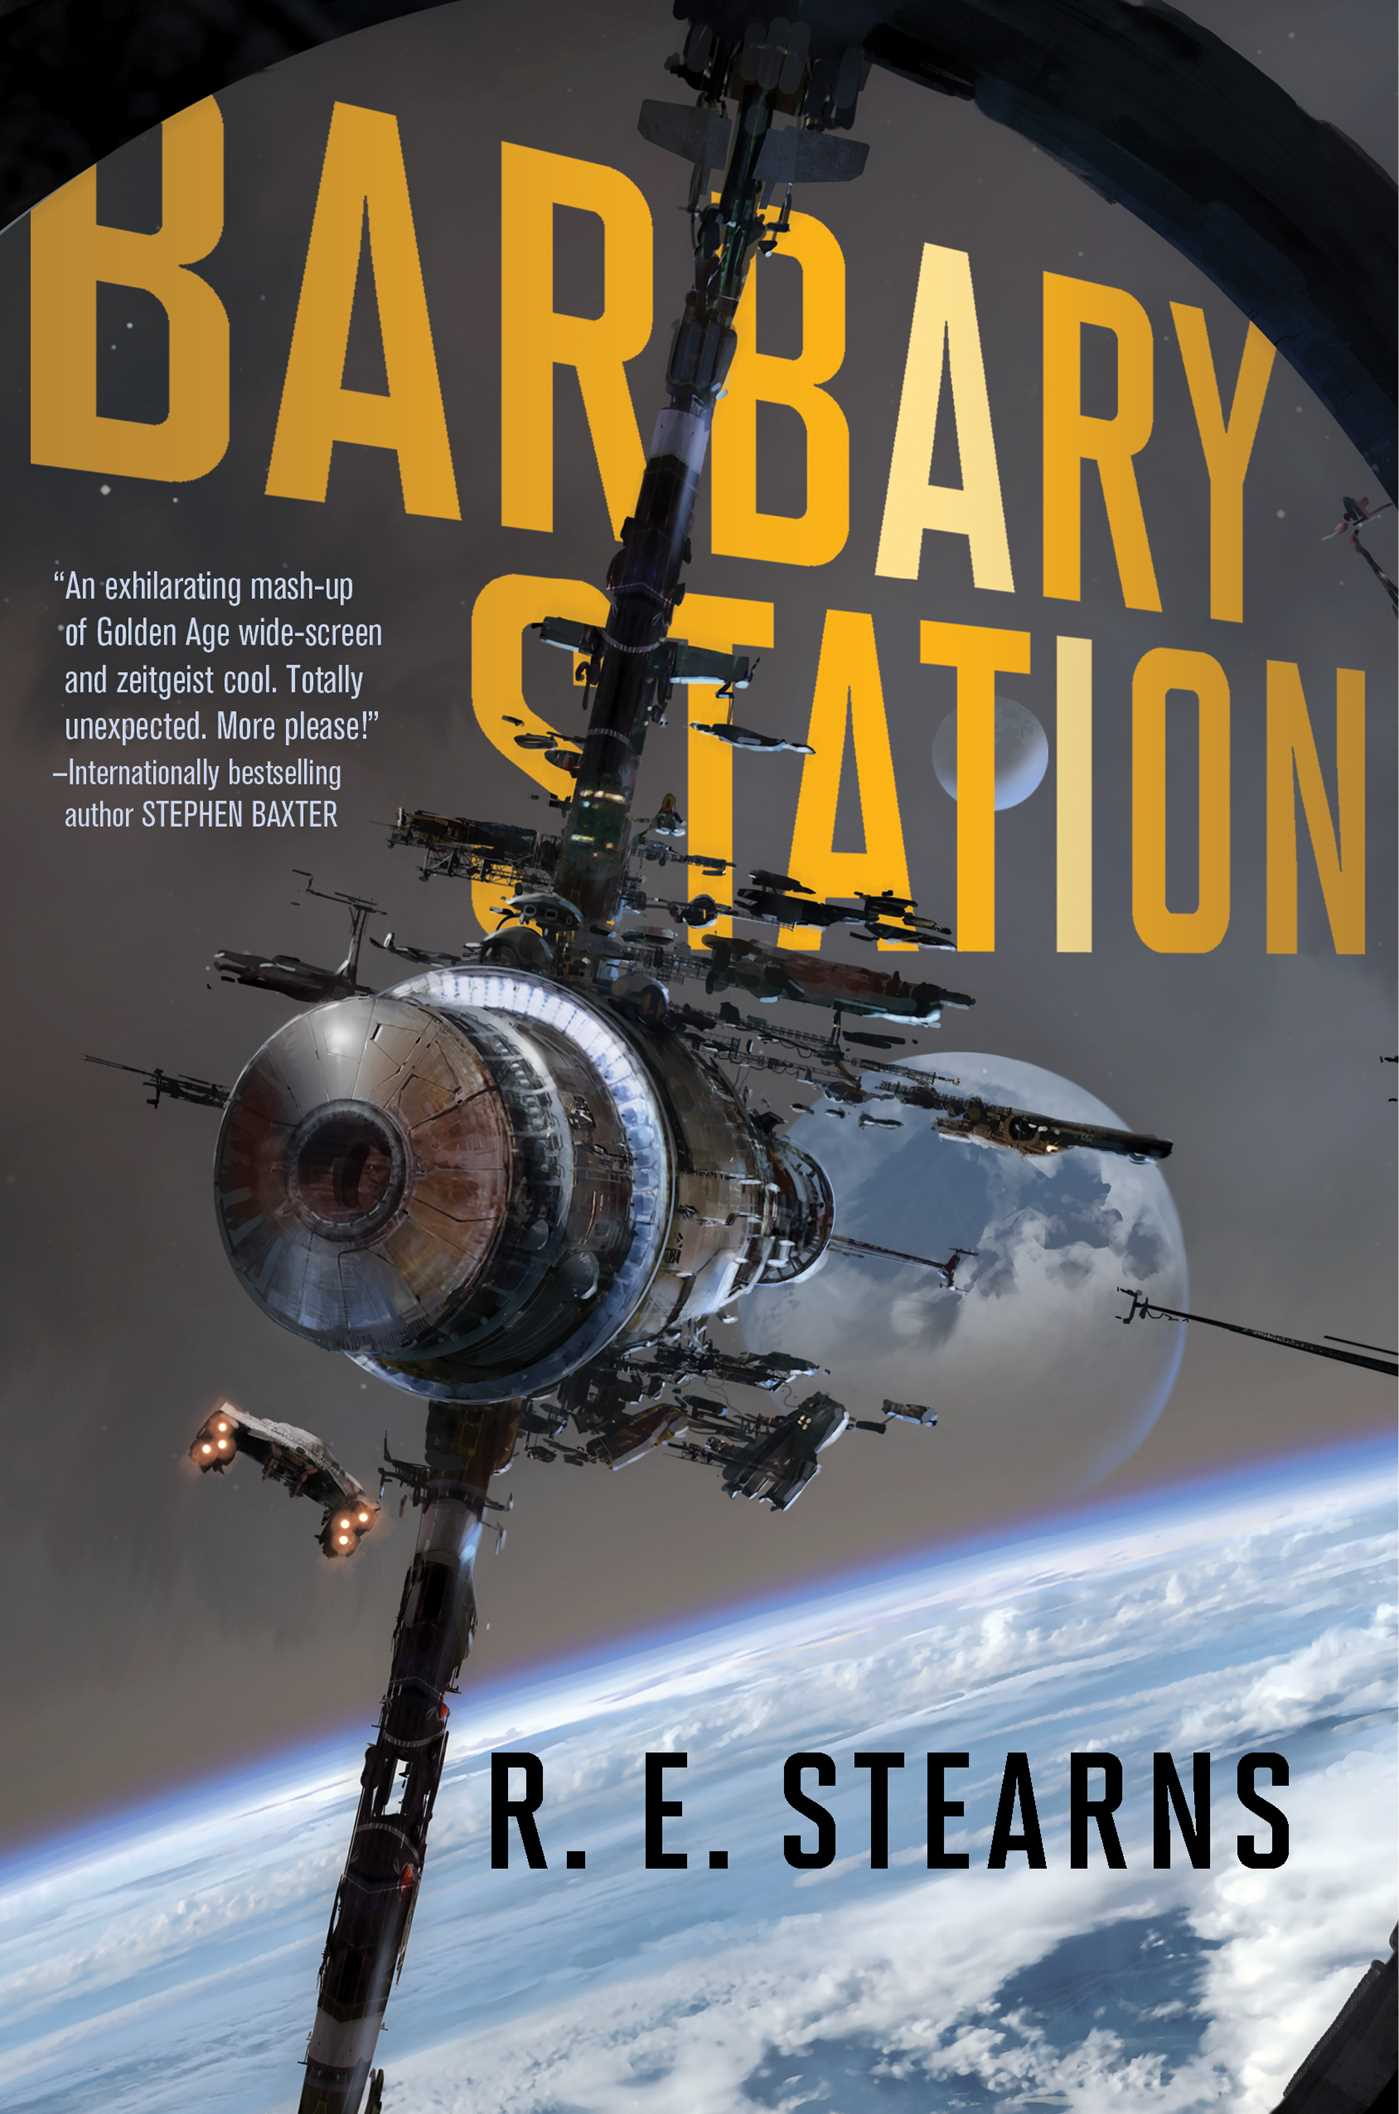 Barbary Station cover image